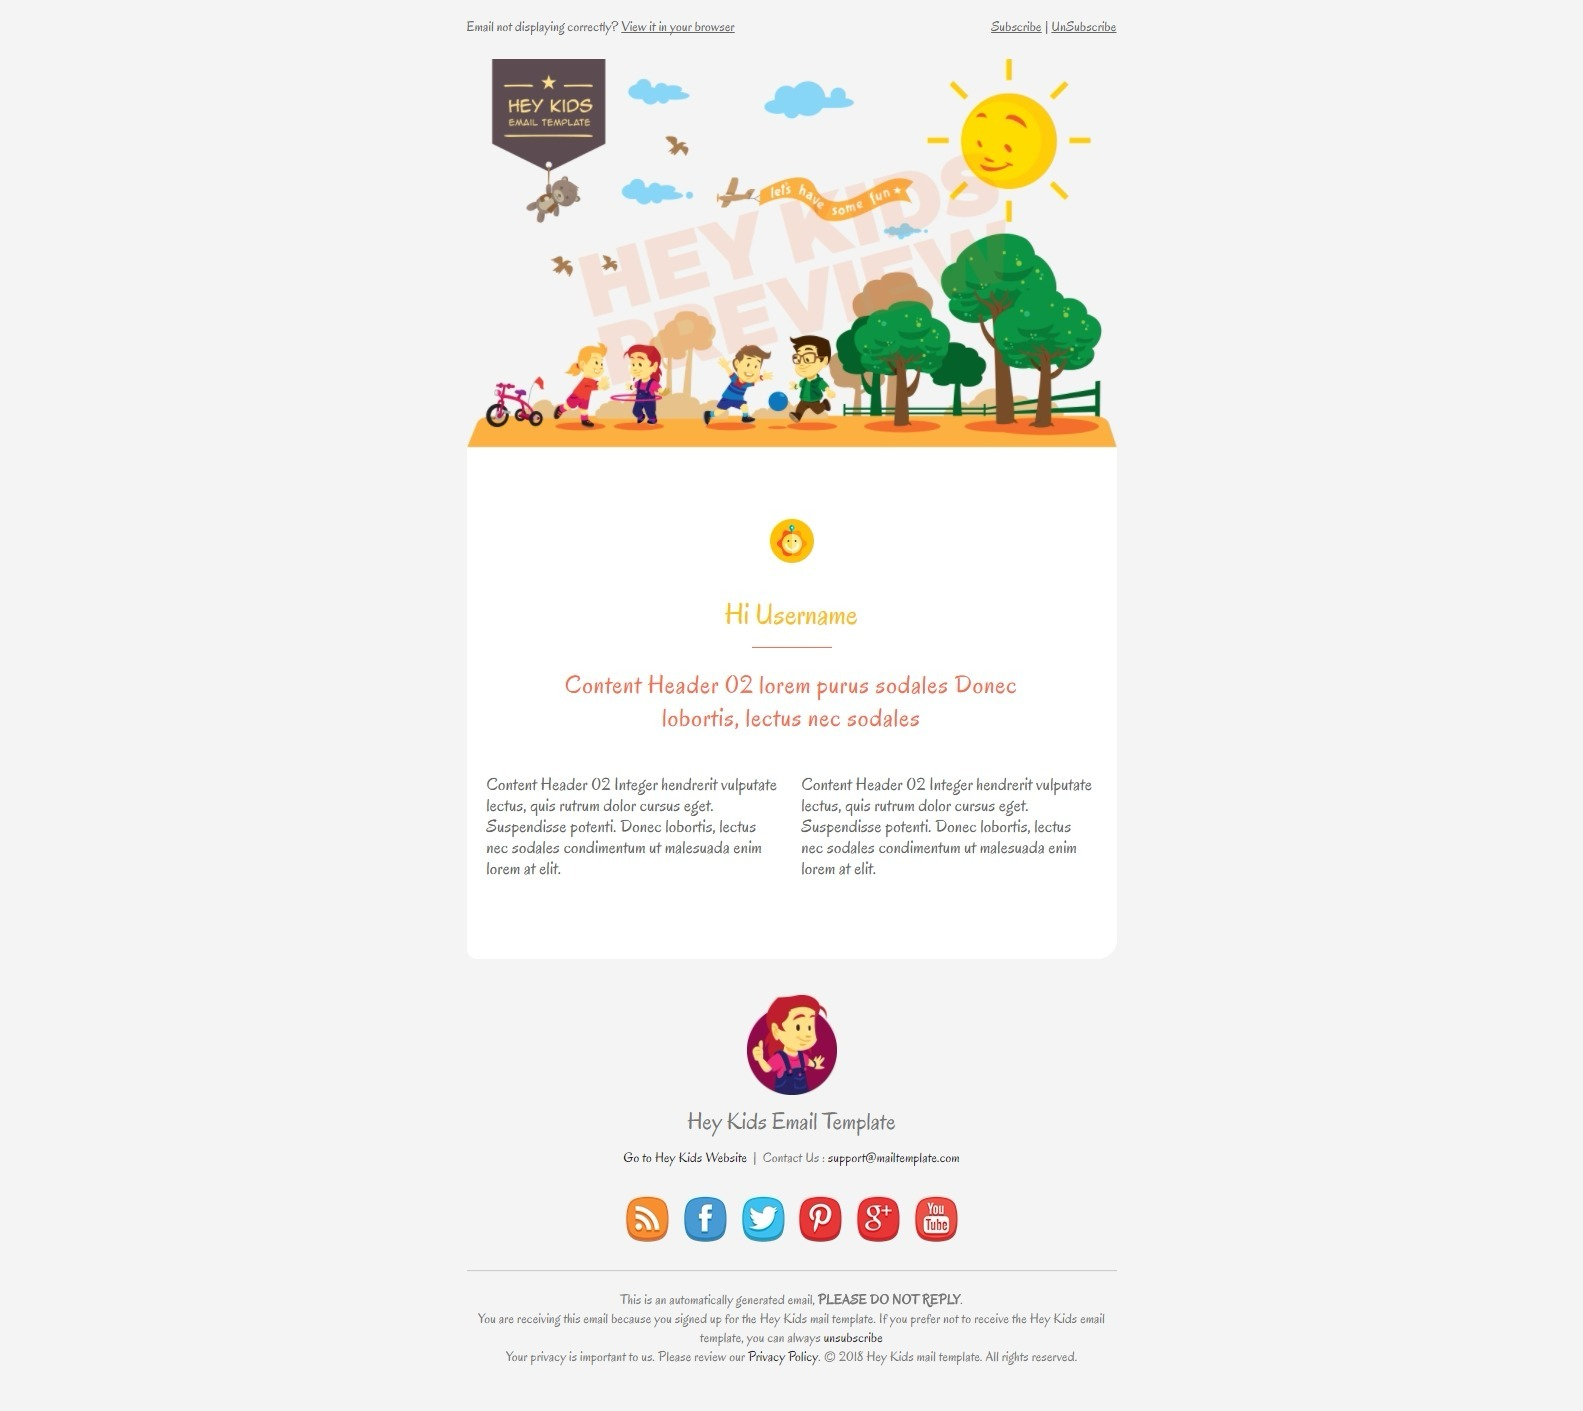 Hey kids email template by bnrcreativelab themeforest previewgreetingg m4hsunfo